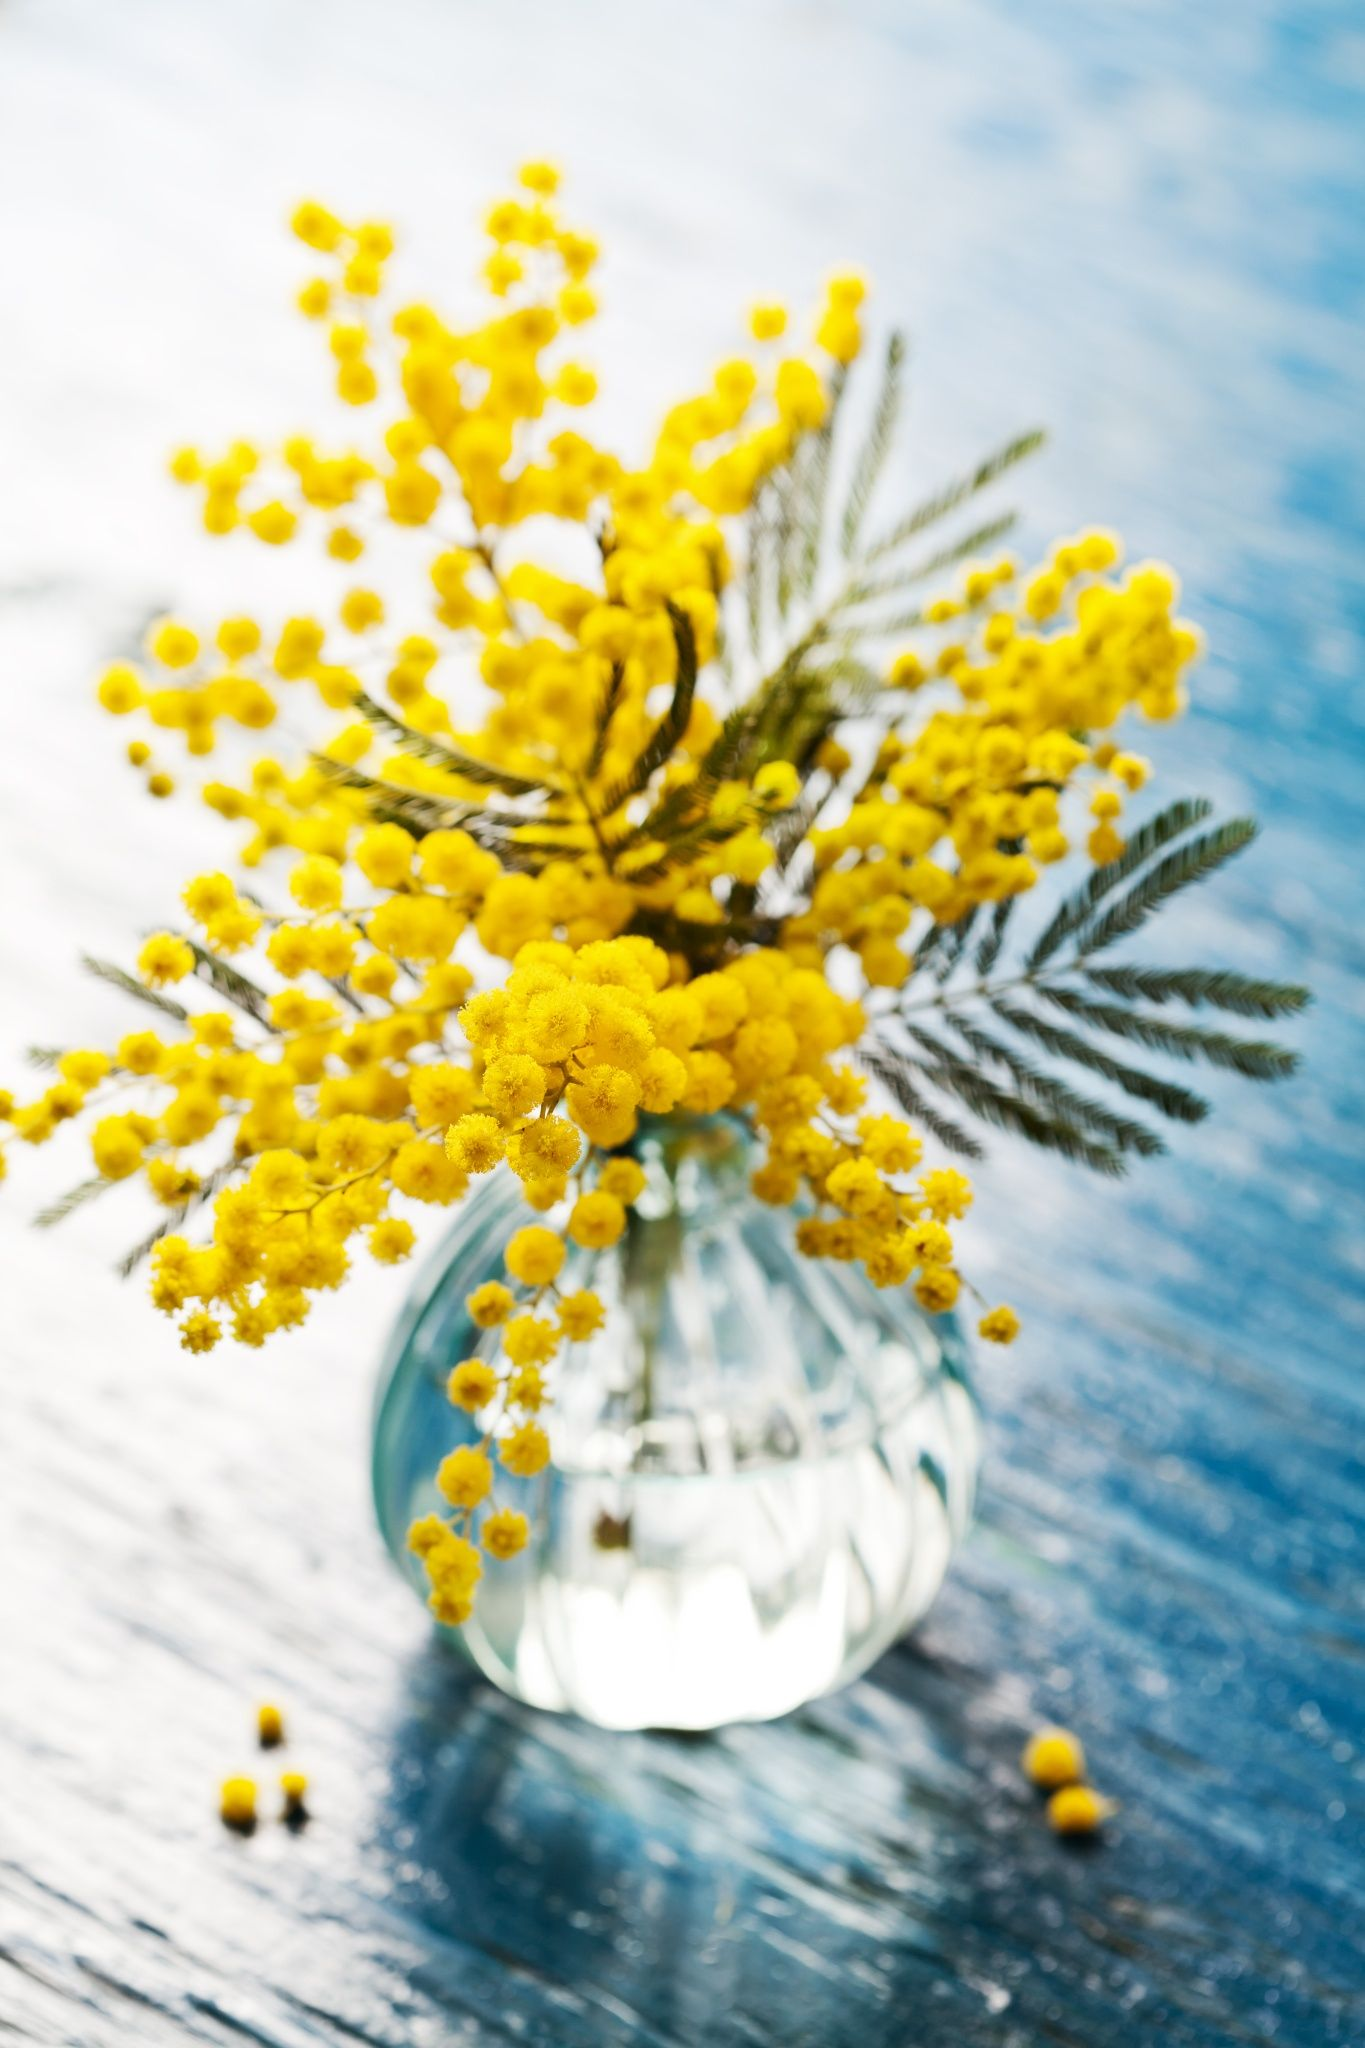 Minosa A Real Showstopper Modern Bathroom: Mimosa Flowers Or Silver Wattle In Vase